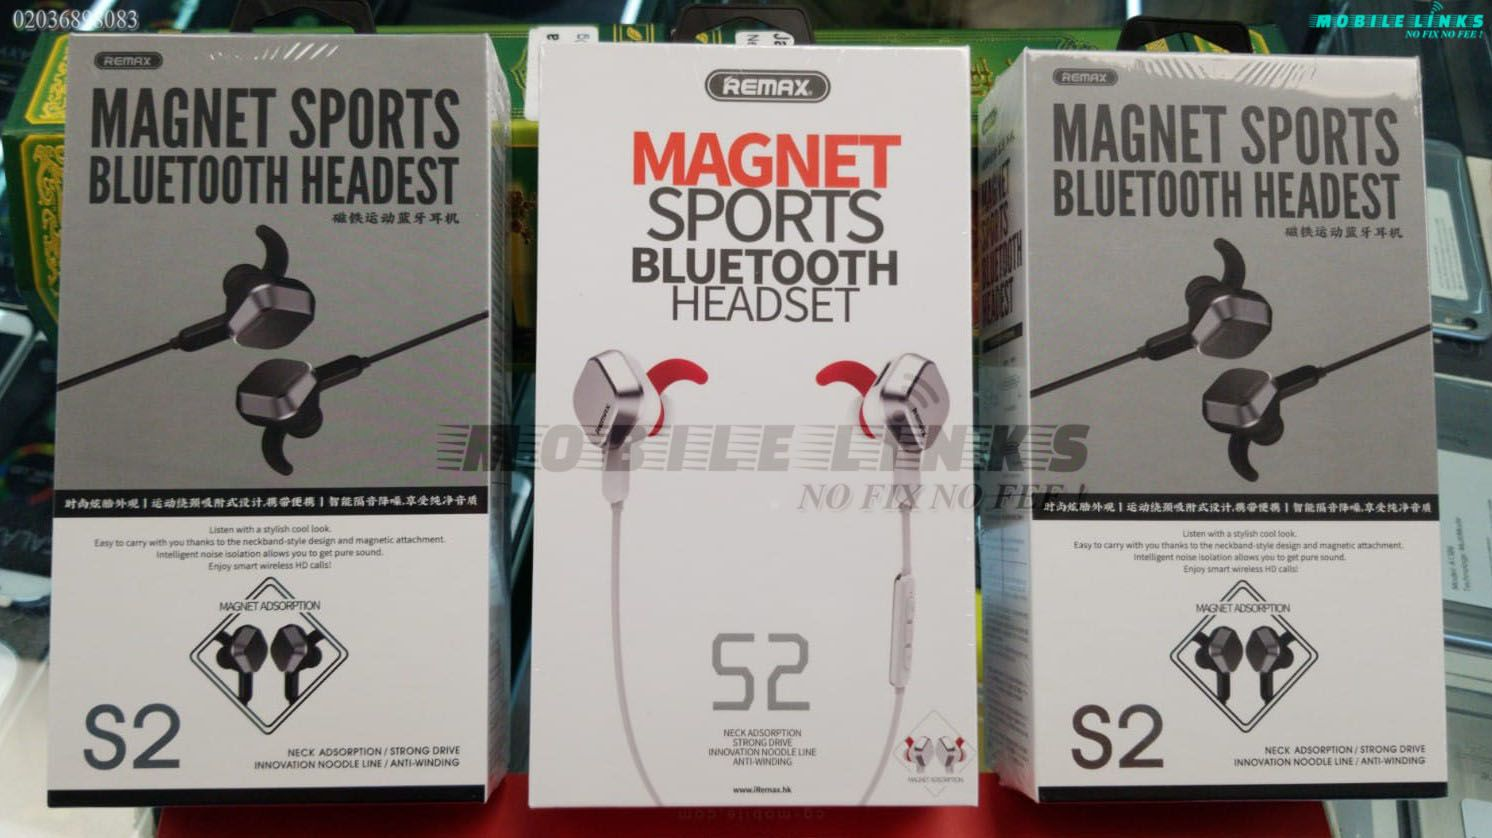 Sports bluetooth headsets available at mobile links